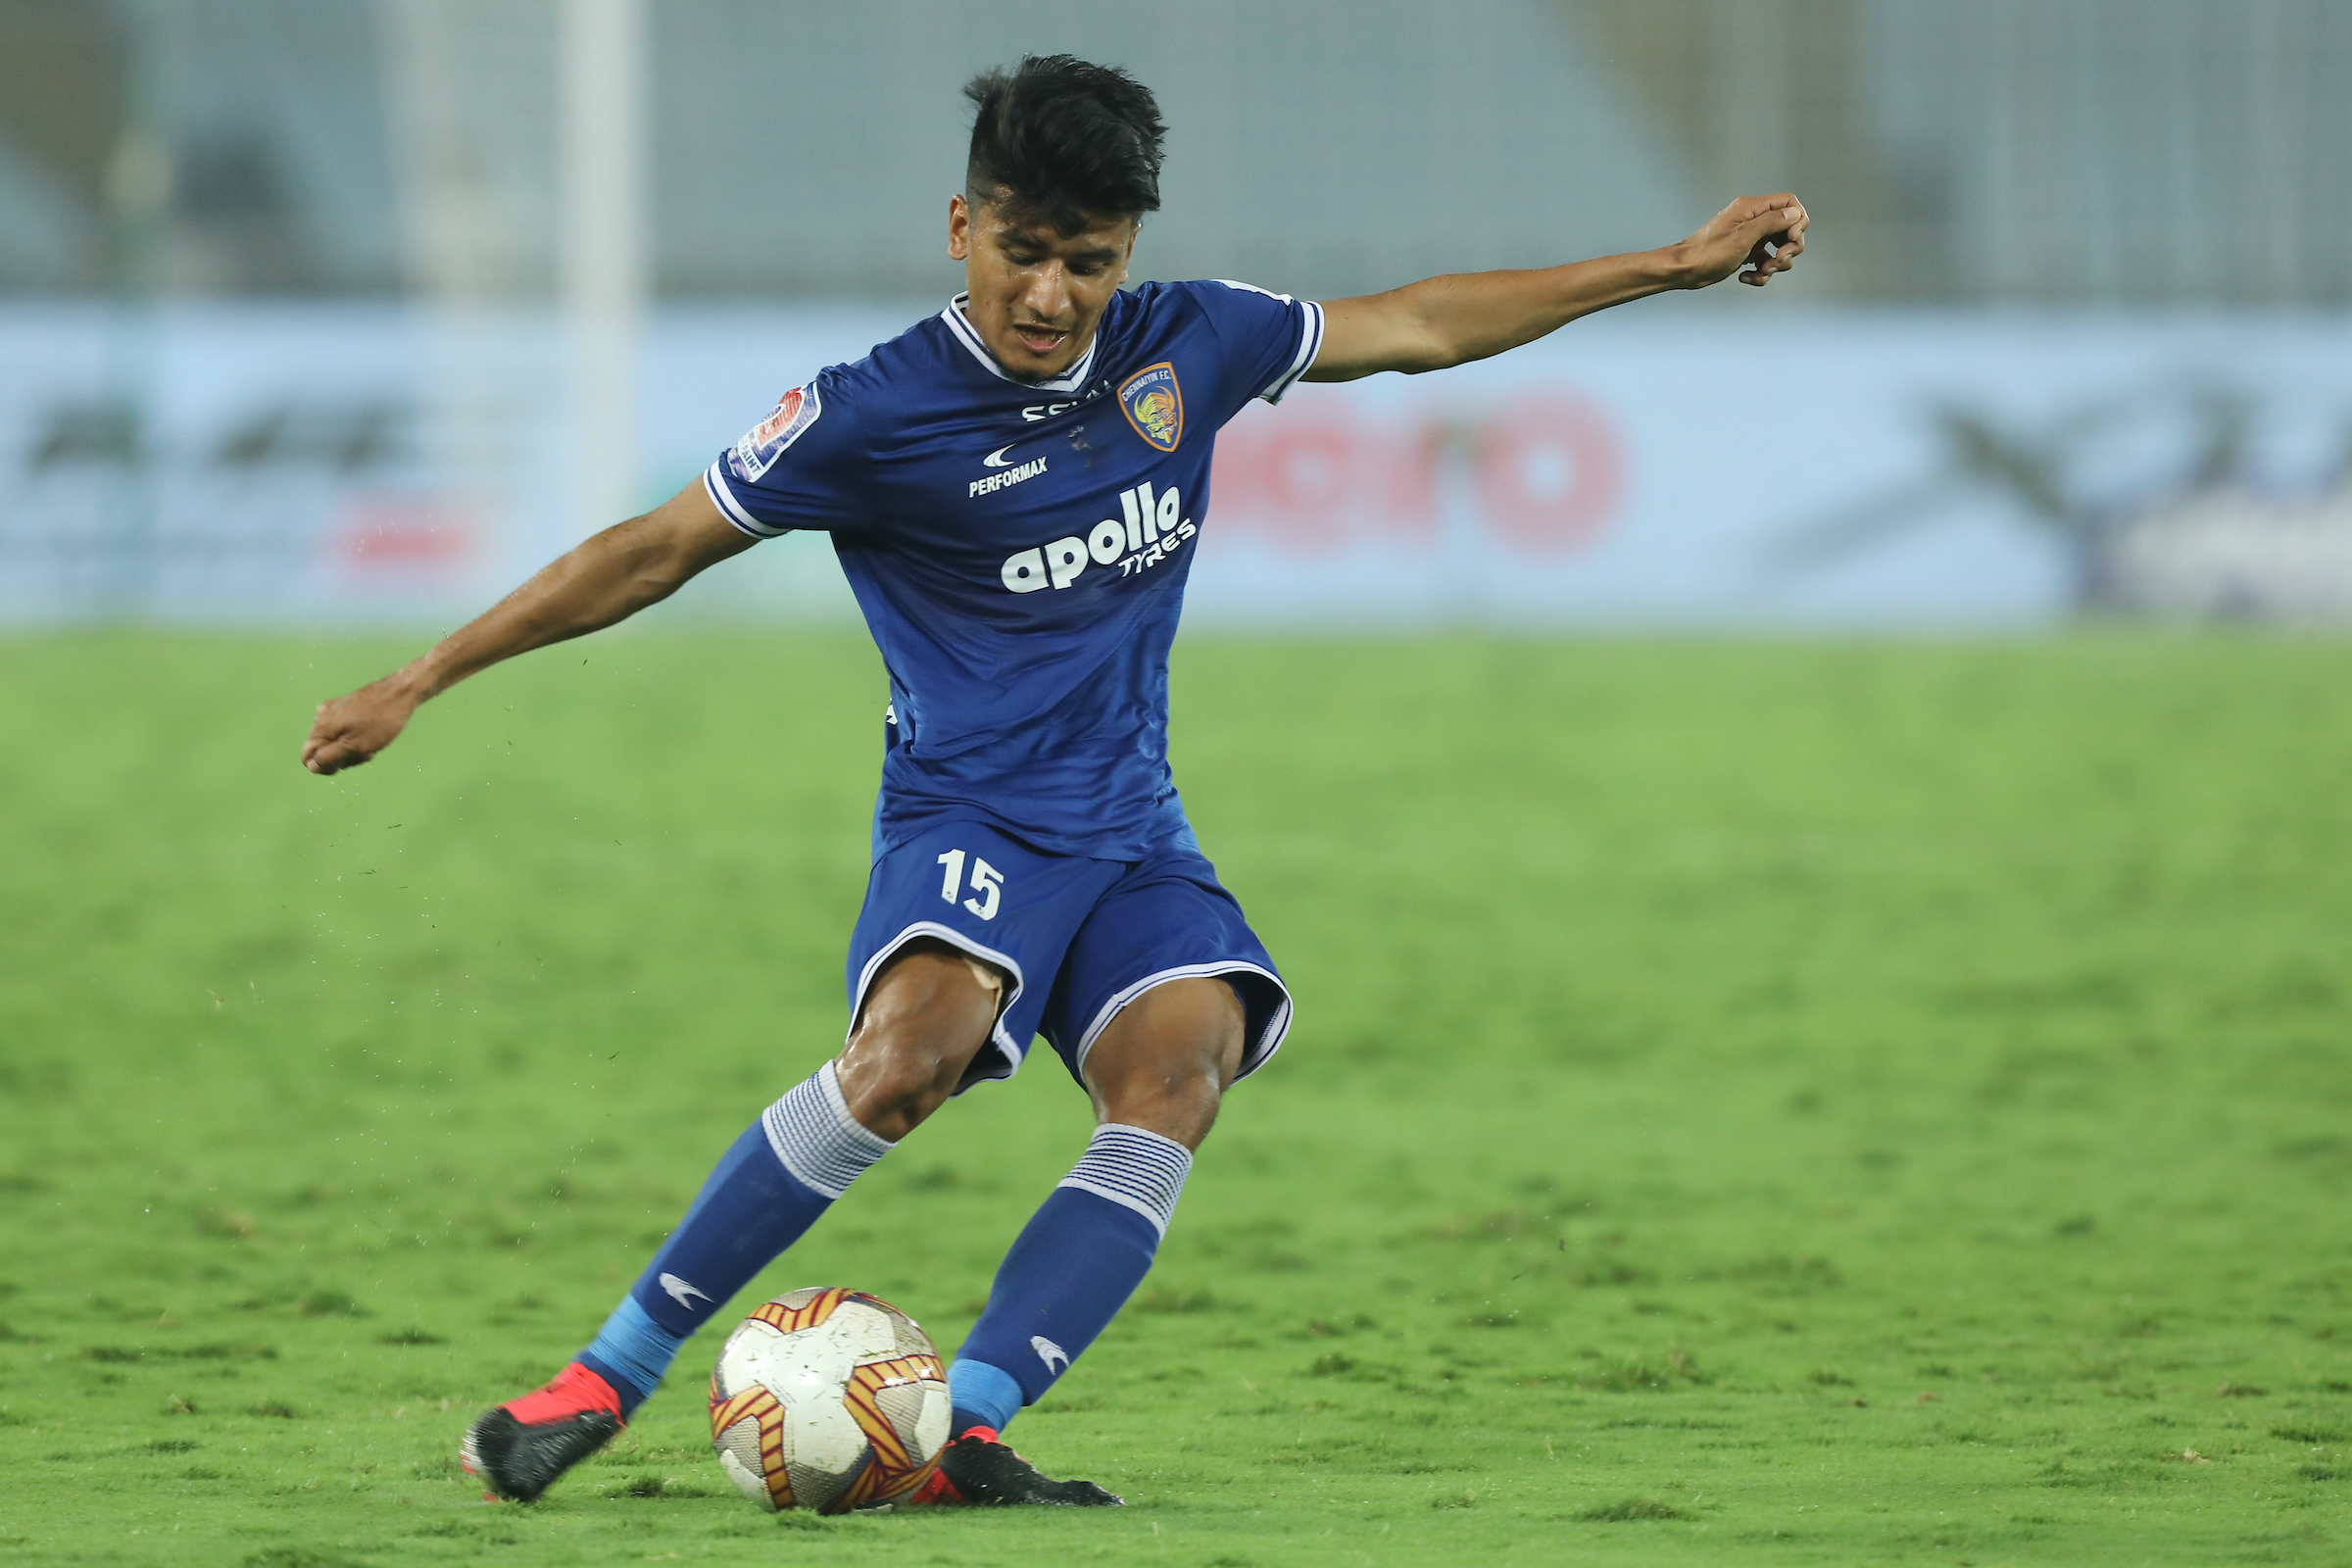 'From a precocious talent to a team leader' - Chennaiyin FC's Anirudh Thapa raring to go after a tough pre-season!